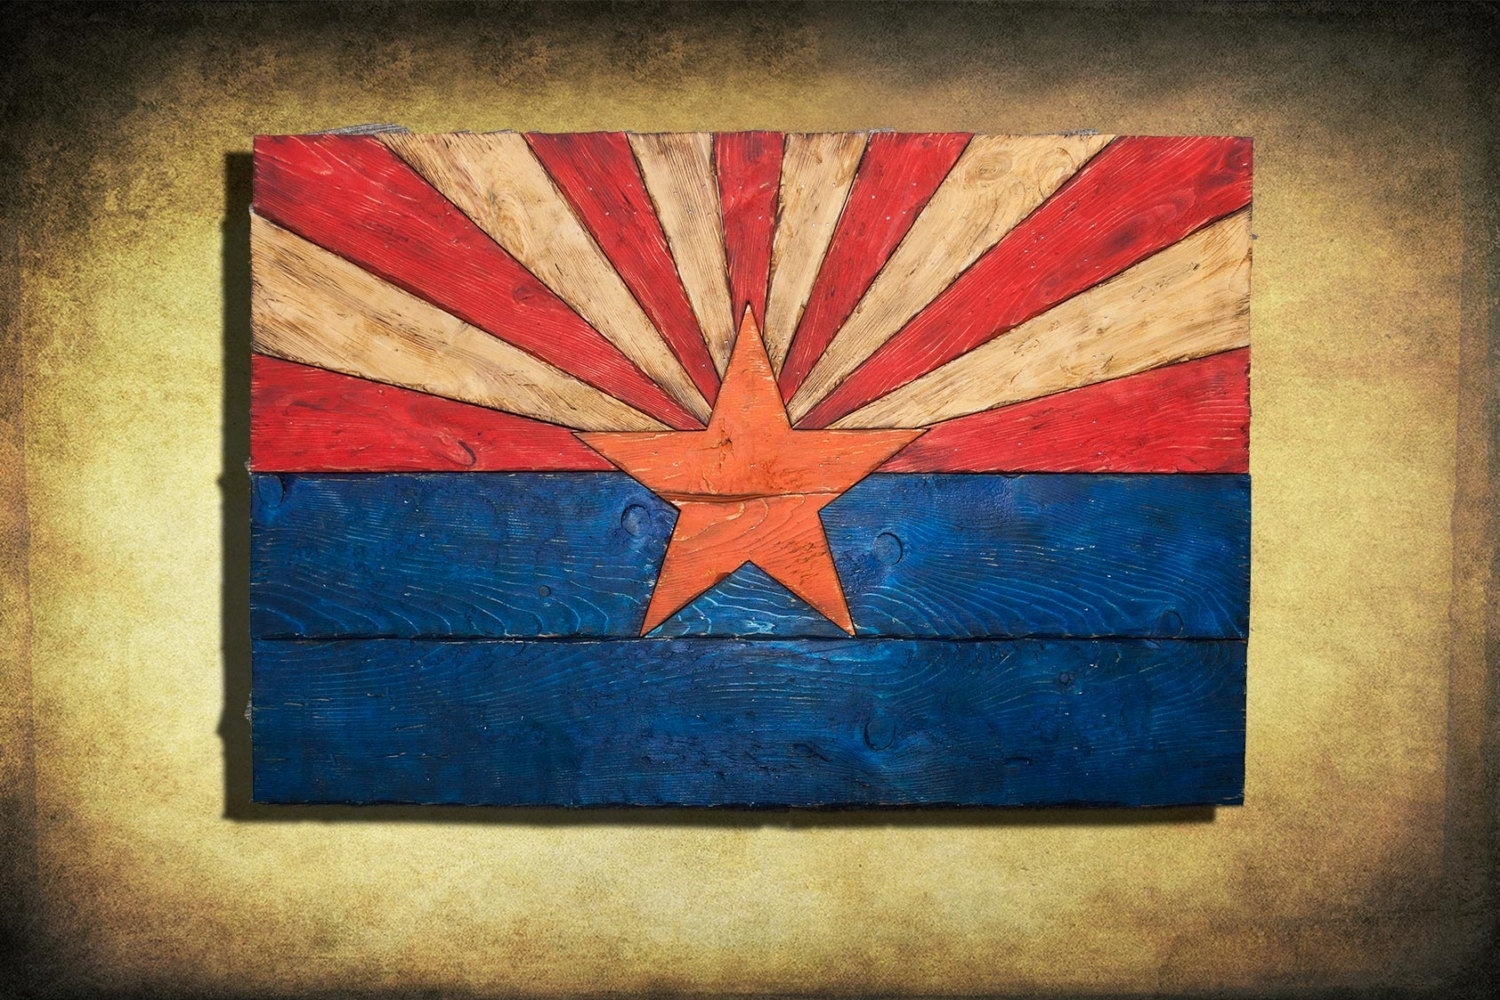 Arizona Flag, Handmade, Distressed Painted Wood, Vintage, Art Intended For Most Popular Arizona Wall Art (View 16 of 20)